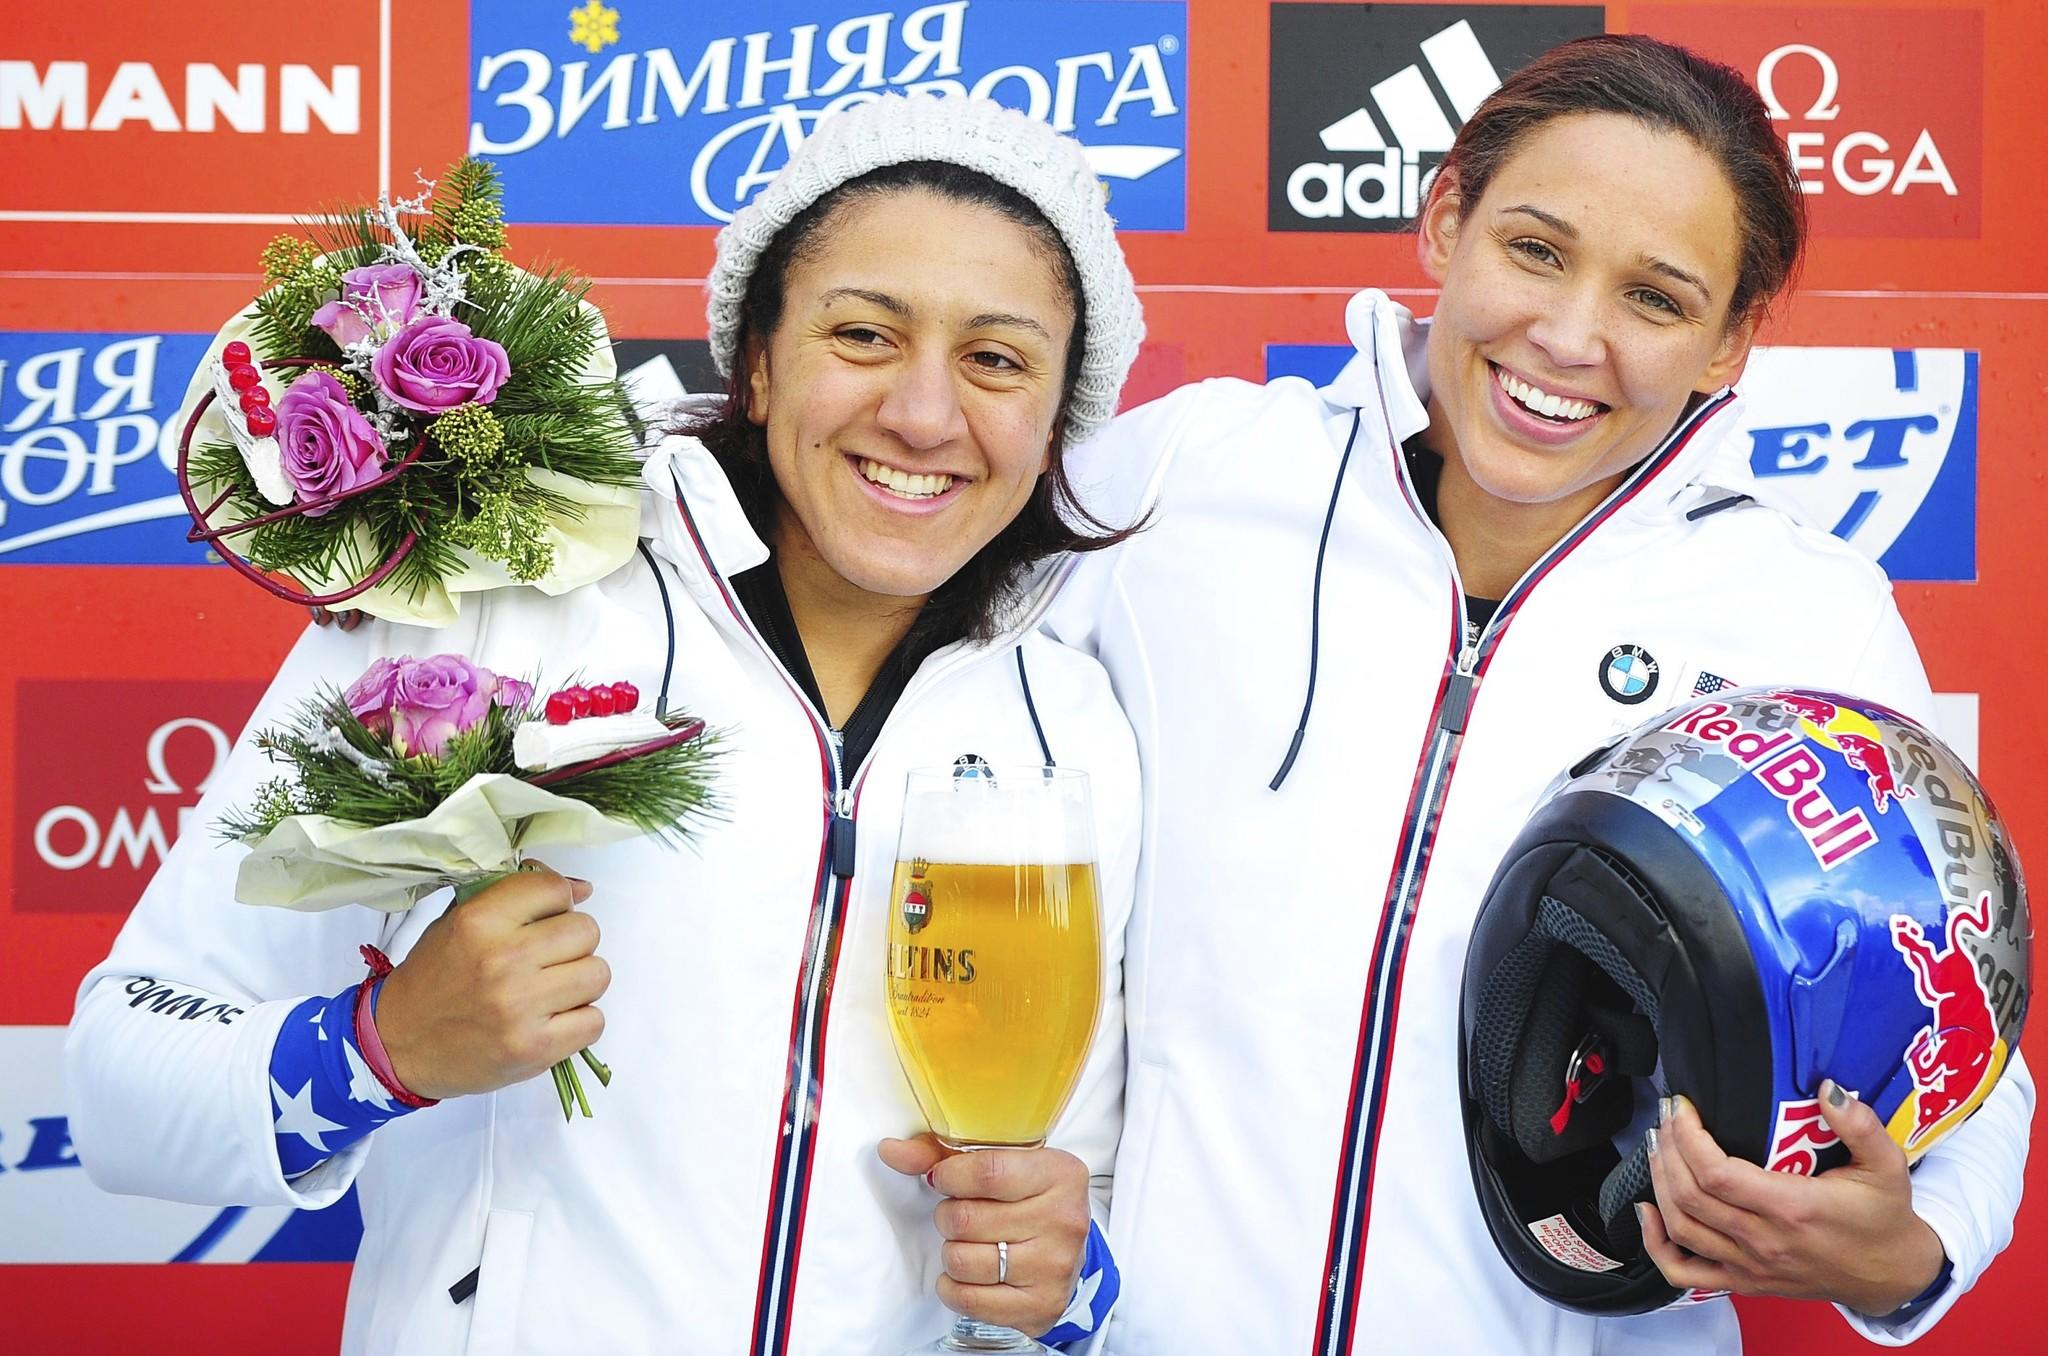 Elana Meyers (left) and Lolo Jones on awards podium after winning a World Cup silver medal in Winterberg, Germany, this month.